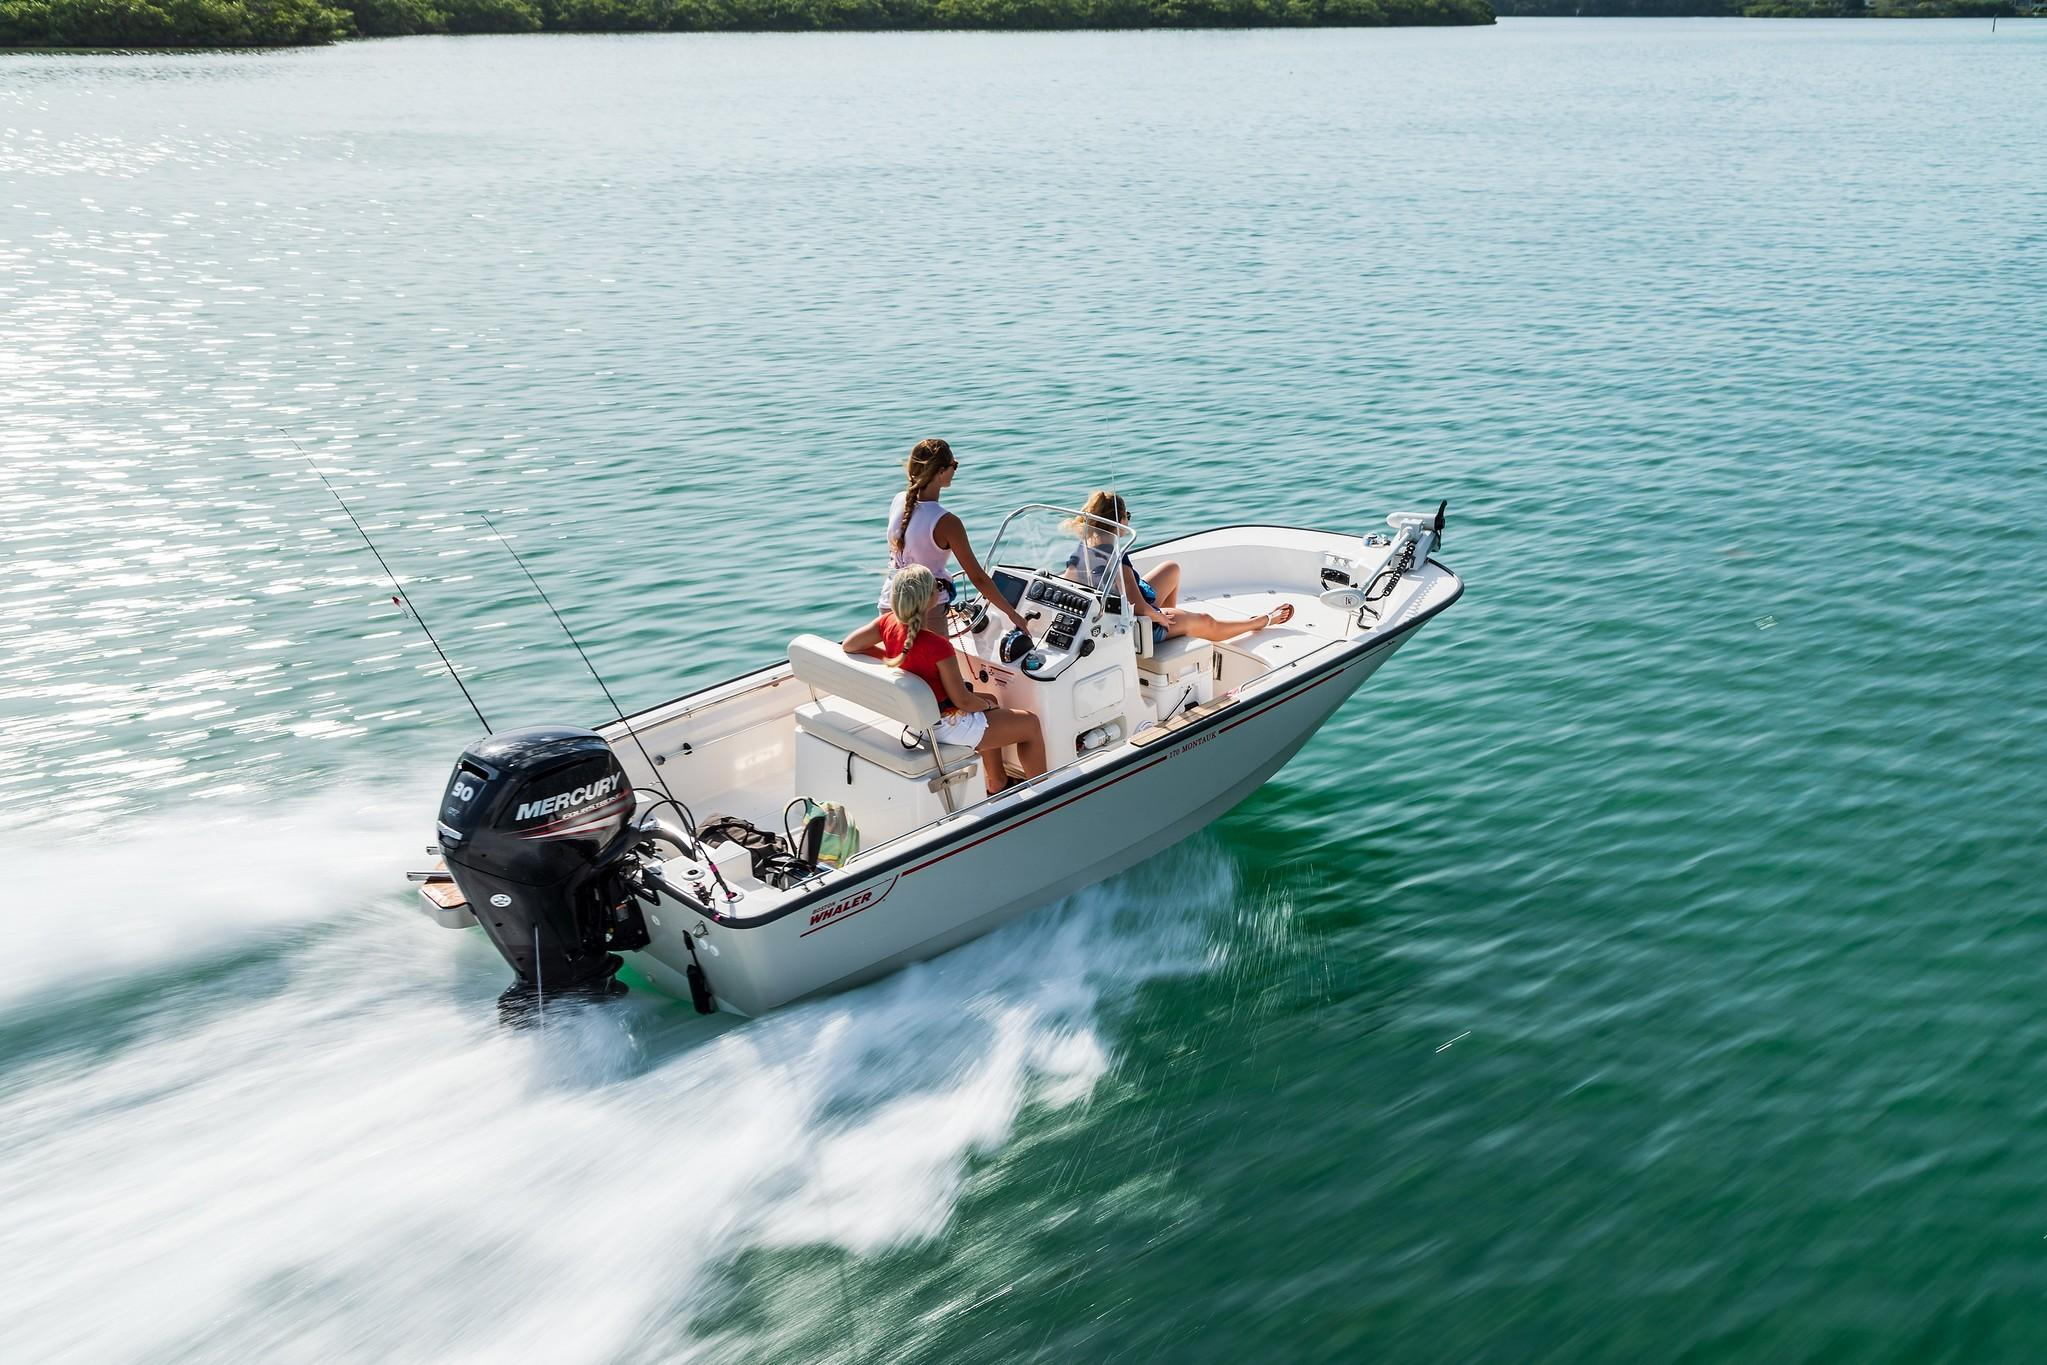 2021 Boston Whaler 170 Montauk #BW1572A inventory image at Sun Country Coastal in Newport Beach